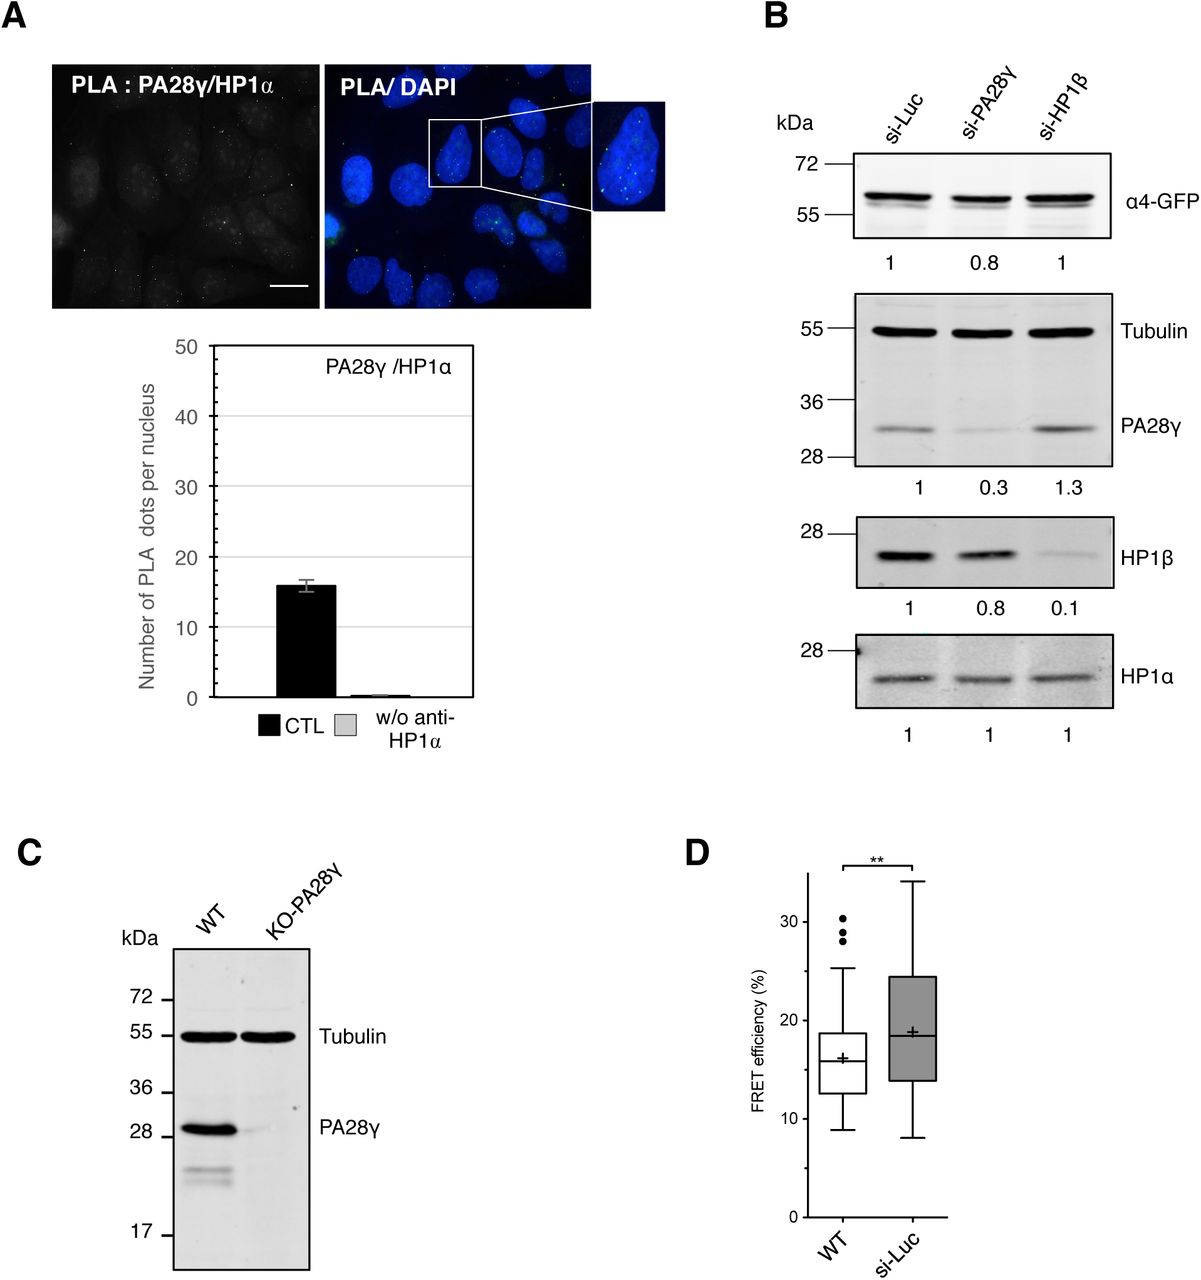 PA28γ -depletion does not alter the expression level of H2B-GFP or mCherry-H2B, and analysis of re-expression of WT- and Δ C-PA28γ in HeLa H2B-2FPs cells. A. Immunoblot analysis of H2B-GFP and mCherry-H2B expression level in total extracts from parental (WT) and KO-PA28γ HeLa H2B-2FPs cells (left panel). Tubulin was used as a loading control. The relative abundance of HP1 β proteins was quantified using ImageJ software. Graphical representation of the relative abundance of H2B-GFP and mCherry-H2B normalized to tubulin (right panel). The mean ± SD is from four independent experiments. Statistical significance was evaluated based on Student's T-test, ns = not significant. ( p = 0.2027 and 0.4024 for H2B-GFP and mCherry-H2B, respectively) B. Quantification of the H2B-GFP and mCherry-H2B fluorescence intensities in WT and KO-PA28γ HeLa H2B-2FPs cells. The total number of analyzed cells is n = 172 (WT), n = 183 (KO-PA28γ). Statistical significance was evaluated with Student's T-test, ns= not significant. C. FRET analysis in WT, KO-PA28γ HeLa H2B-FPs cells, and WT HeLa H2B-FPs cells treated with Trichostatin A (TSA, 200ng/ml, 24h). The statistical analysis of the mean FRET efficiency percentage is presented as box-and-whisker plots. The thick line represents median, the boxes correspond to the mean FRET values upper and lower of the median, with the whiskers covering the 10-90 percentile range. The total number of analyzed nuclei is n = 154 (WT), n = 132 (KO-PA28γ), and n = 33 (WT + TSA), **** p